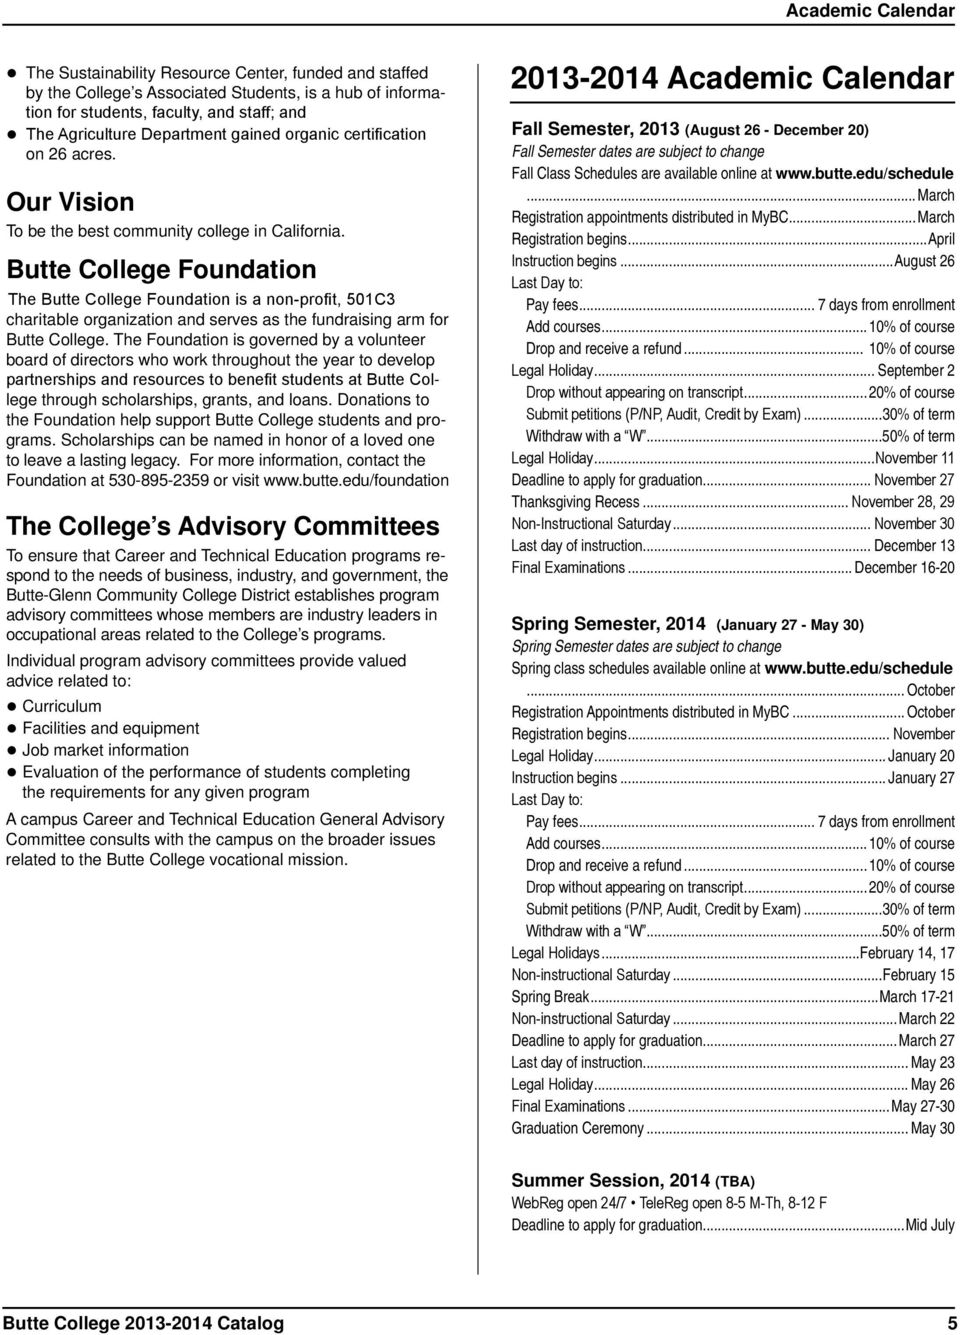 Butte College Foundation The Butte College Foundation is a non-profit, 501C3 charitable organization and serves as the fundraising arm for Butte College.